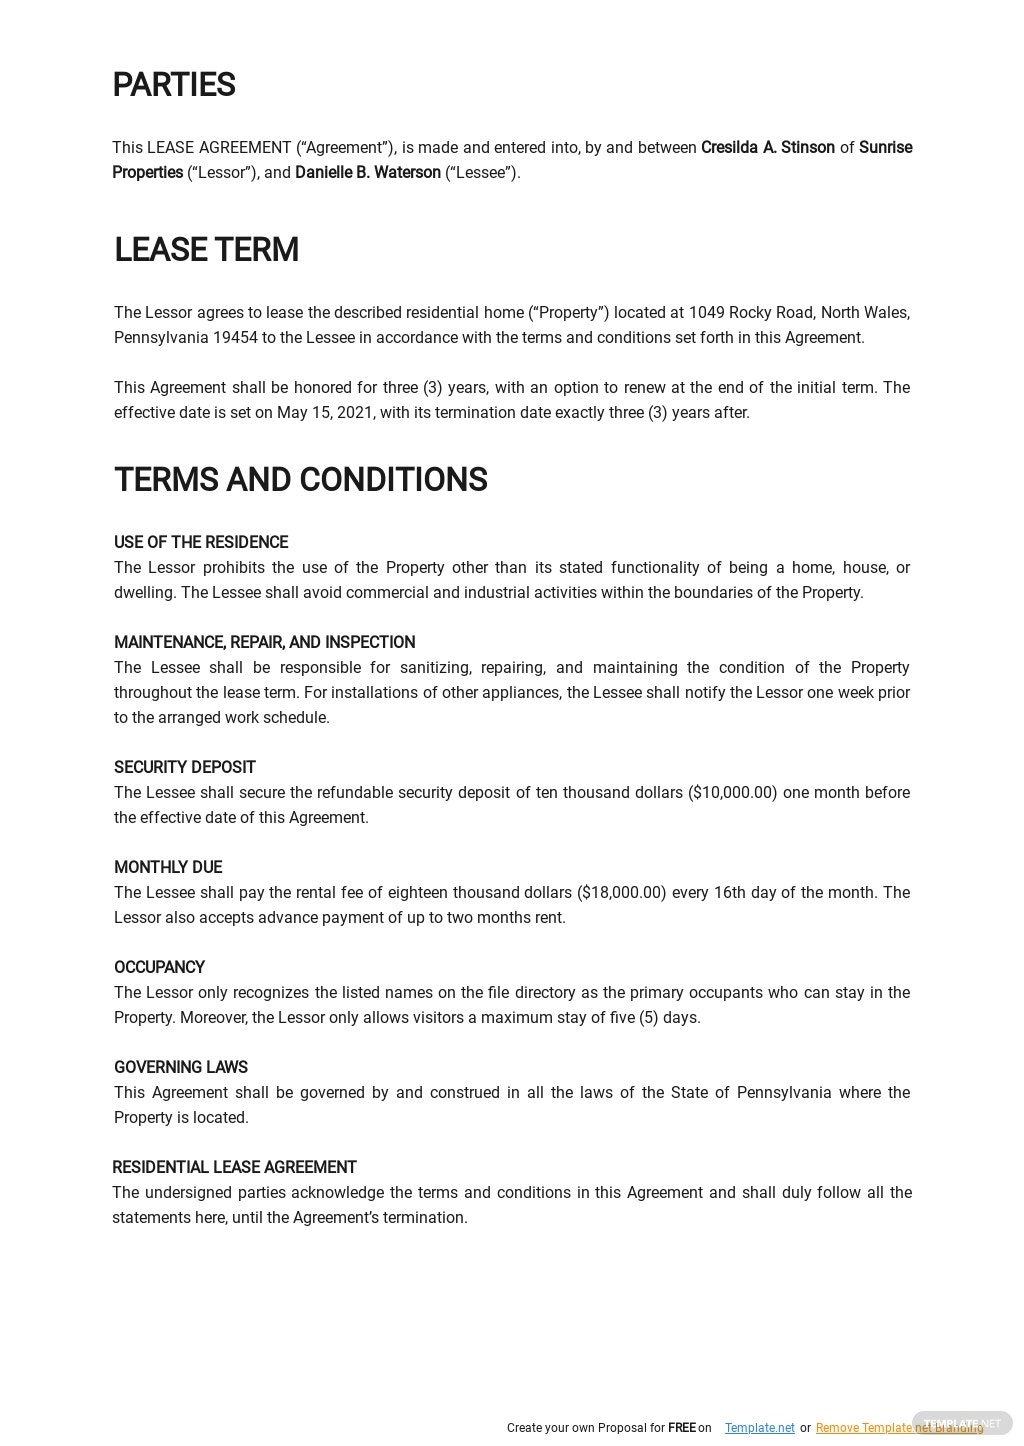 Basic Residential Lease Agreement Template 1.jpe